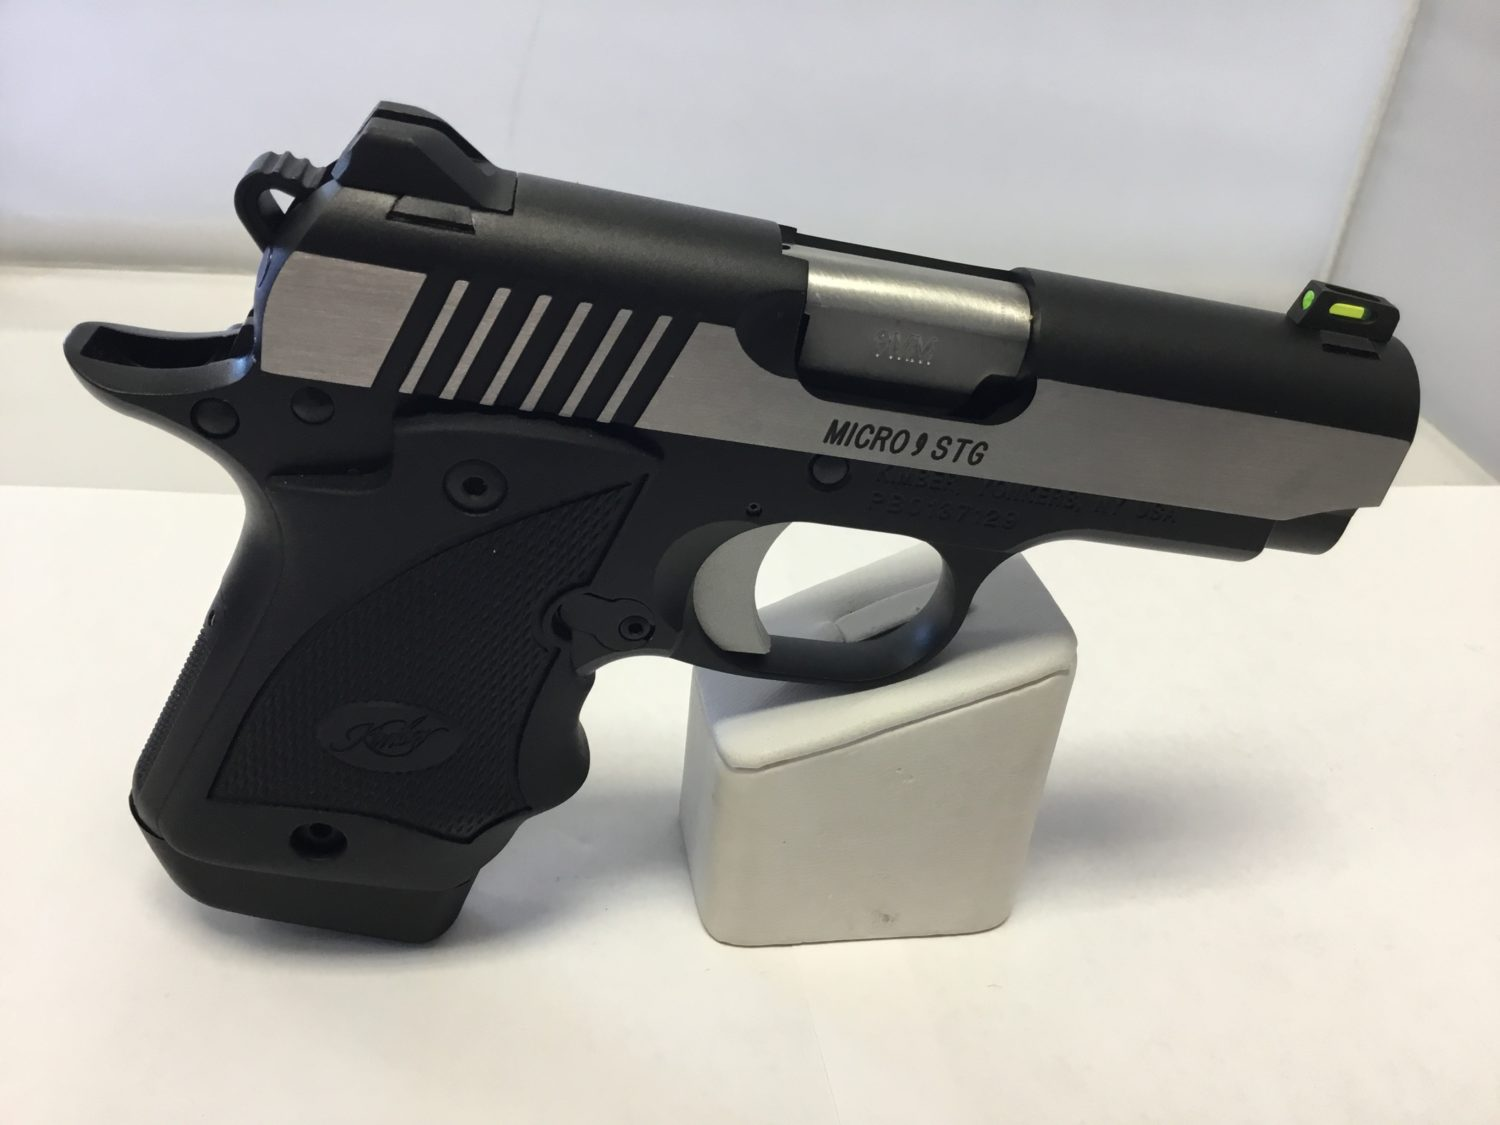 Kimber Micro 9 STG Pistol - Cash in a Flash Pawn Shop